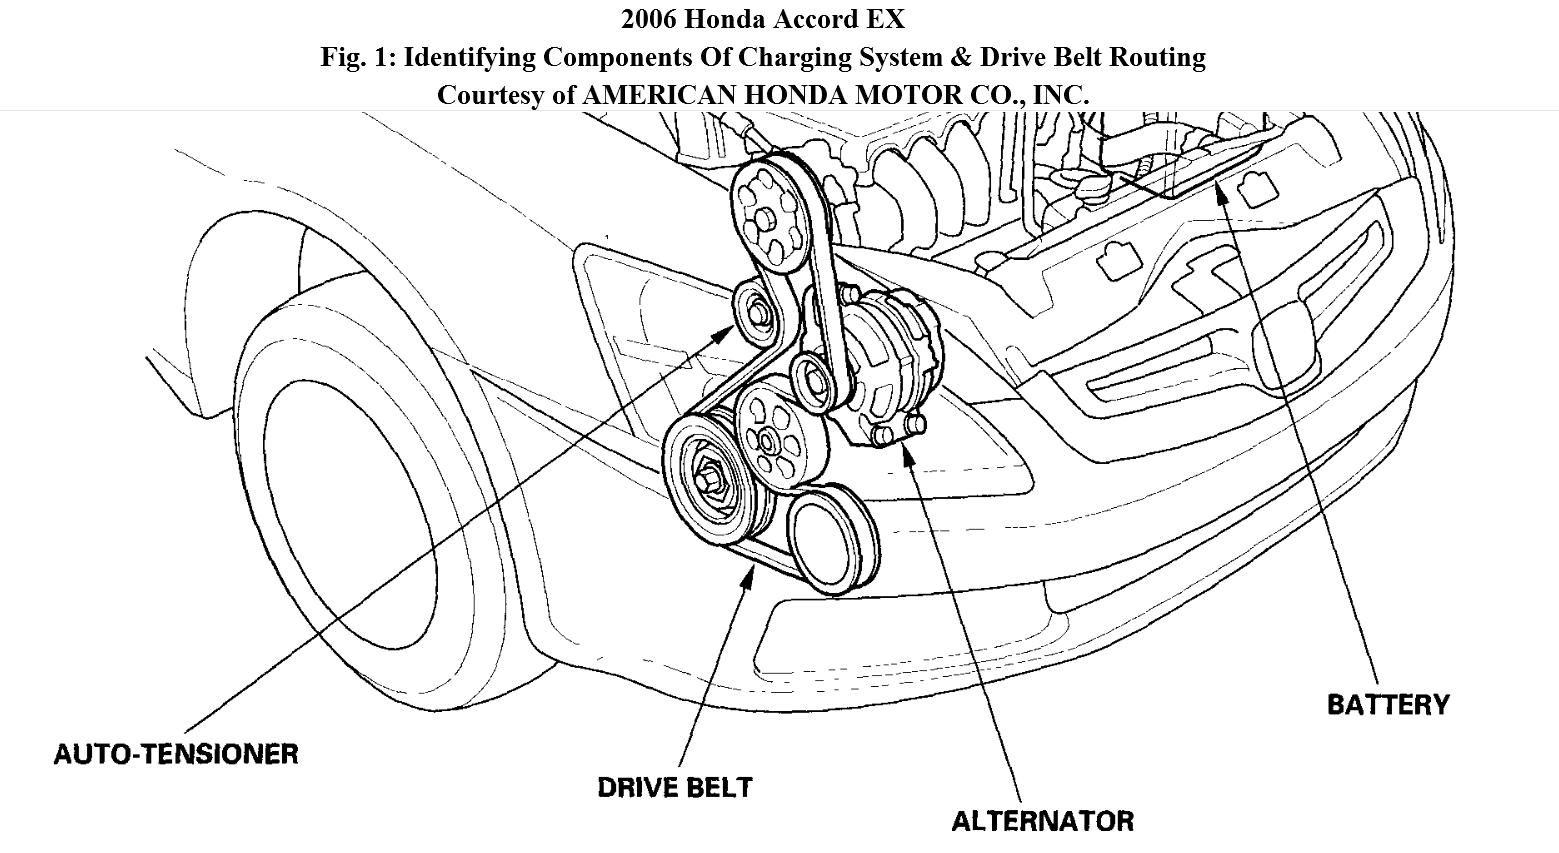 2008 Honda Accord Ex Engine Diagram Residential Electrical Symbols \u2022 2008  Honda Accord Engine Compartment Diagram 2008 Honda Accord Engine Diagram